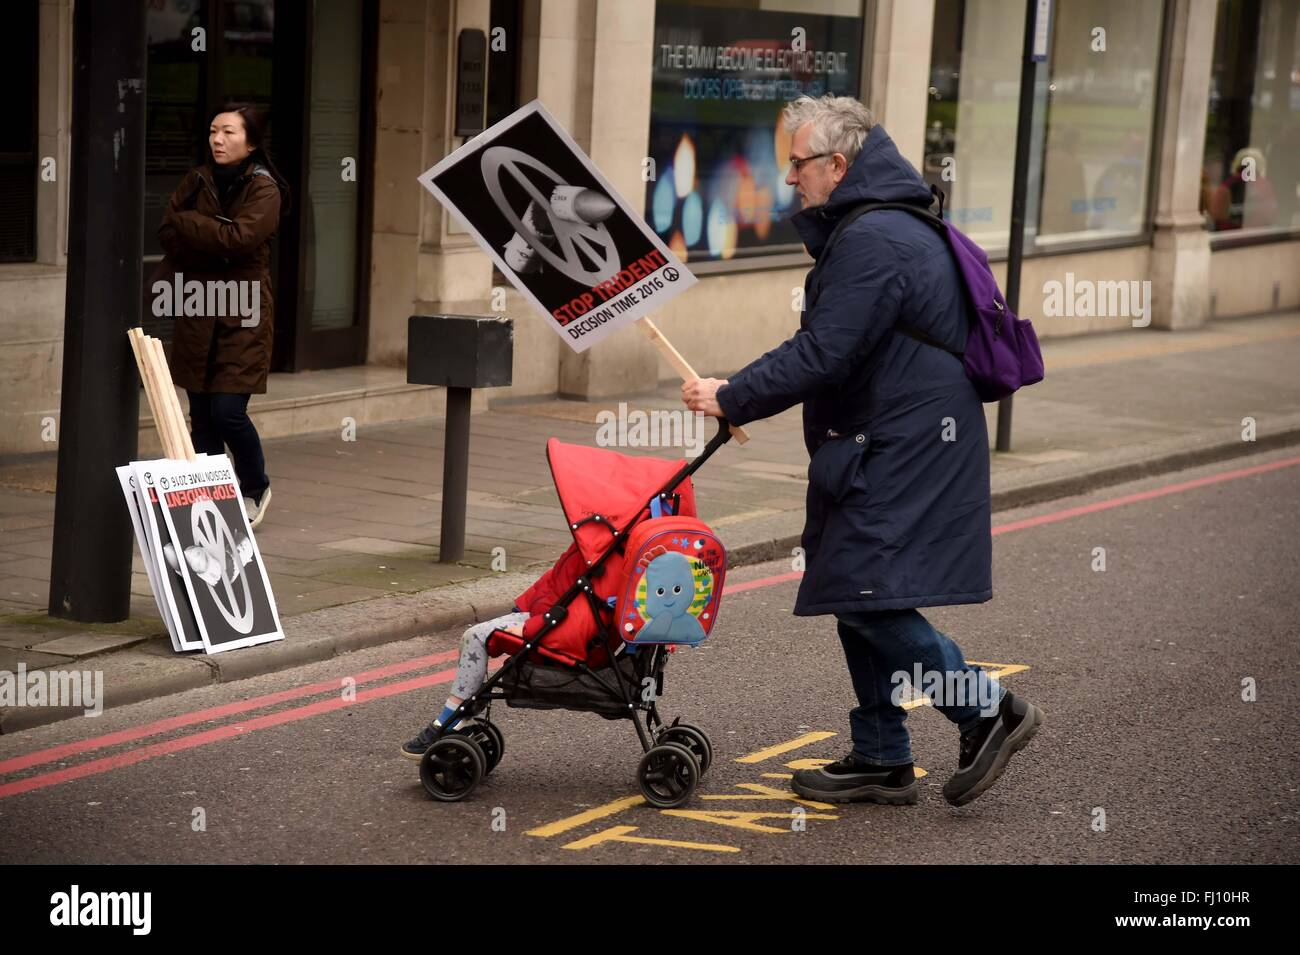 CND Anti Trident Protest rally, London, UK - Stock Image